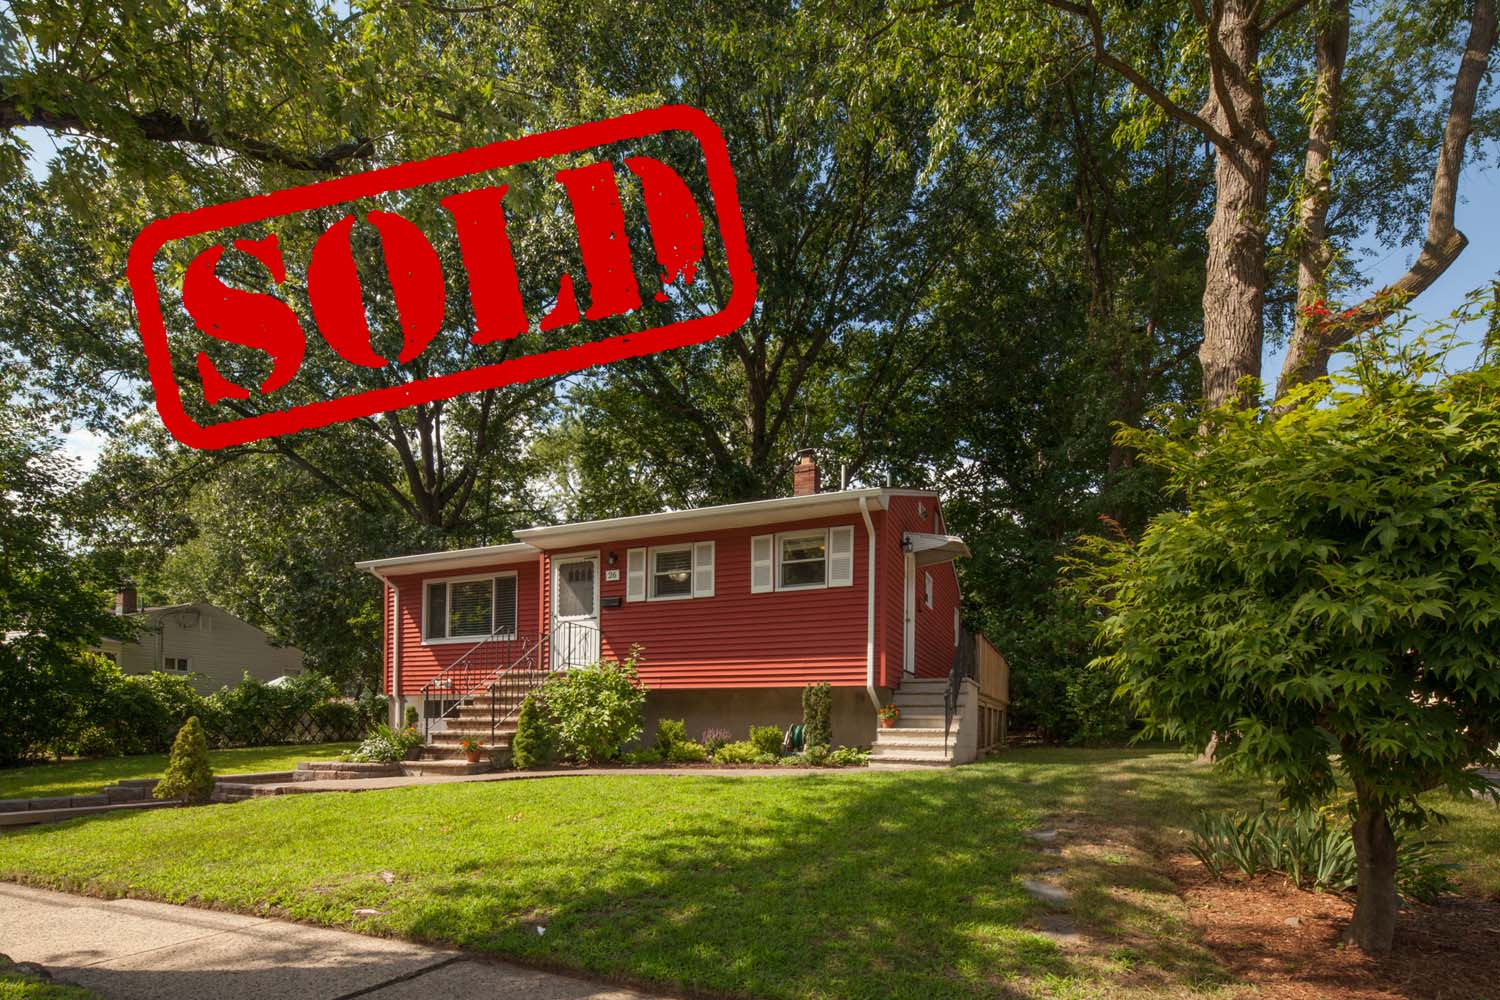 26 sycamore road, dumont nj - $330,000 // sold